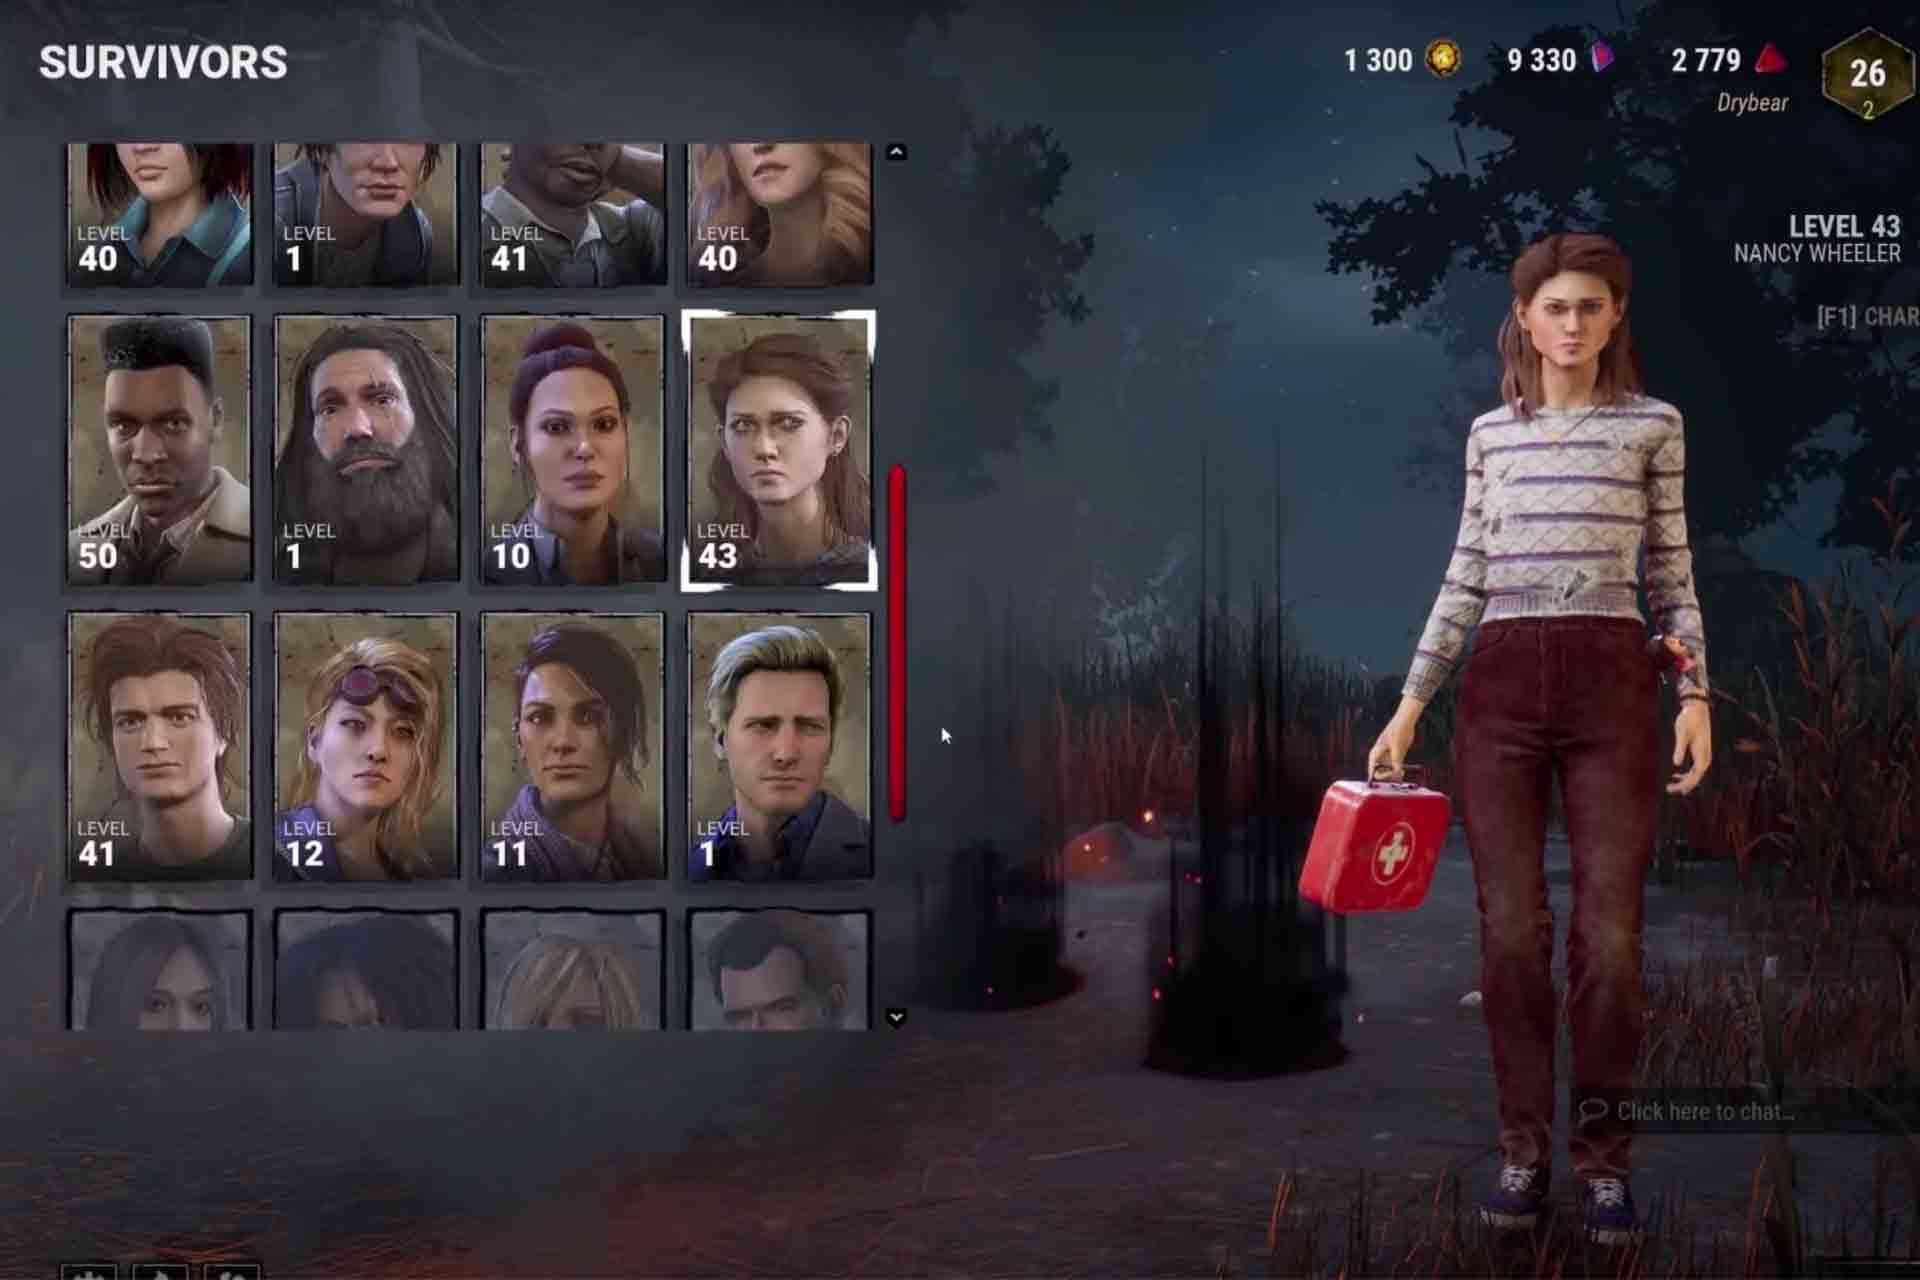 Survivor gameplay details in Dead by Daylight game. Tips and tricks to survive.